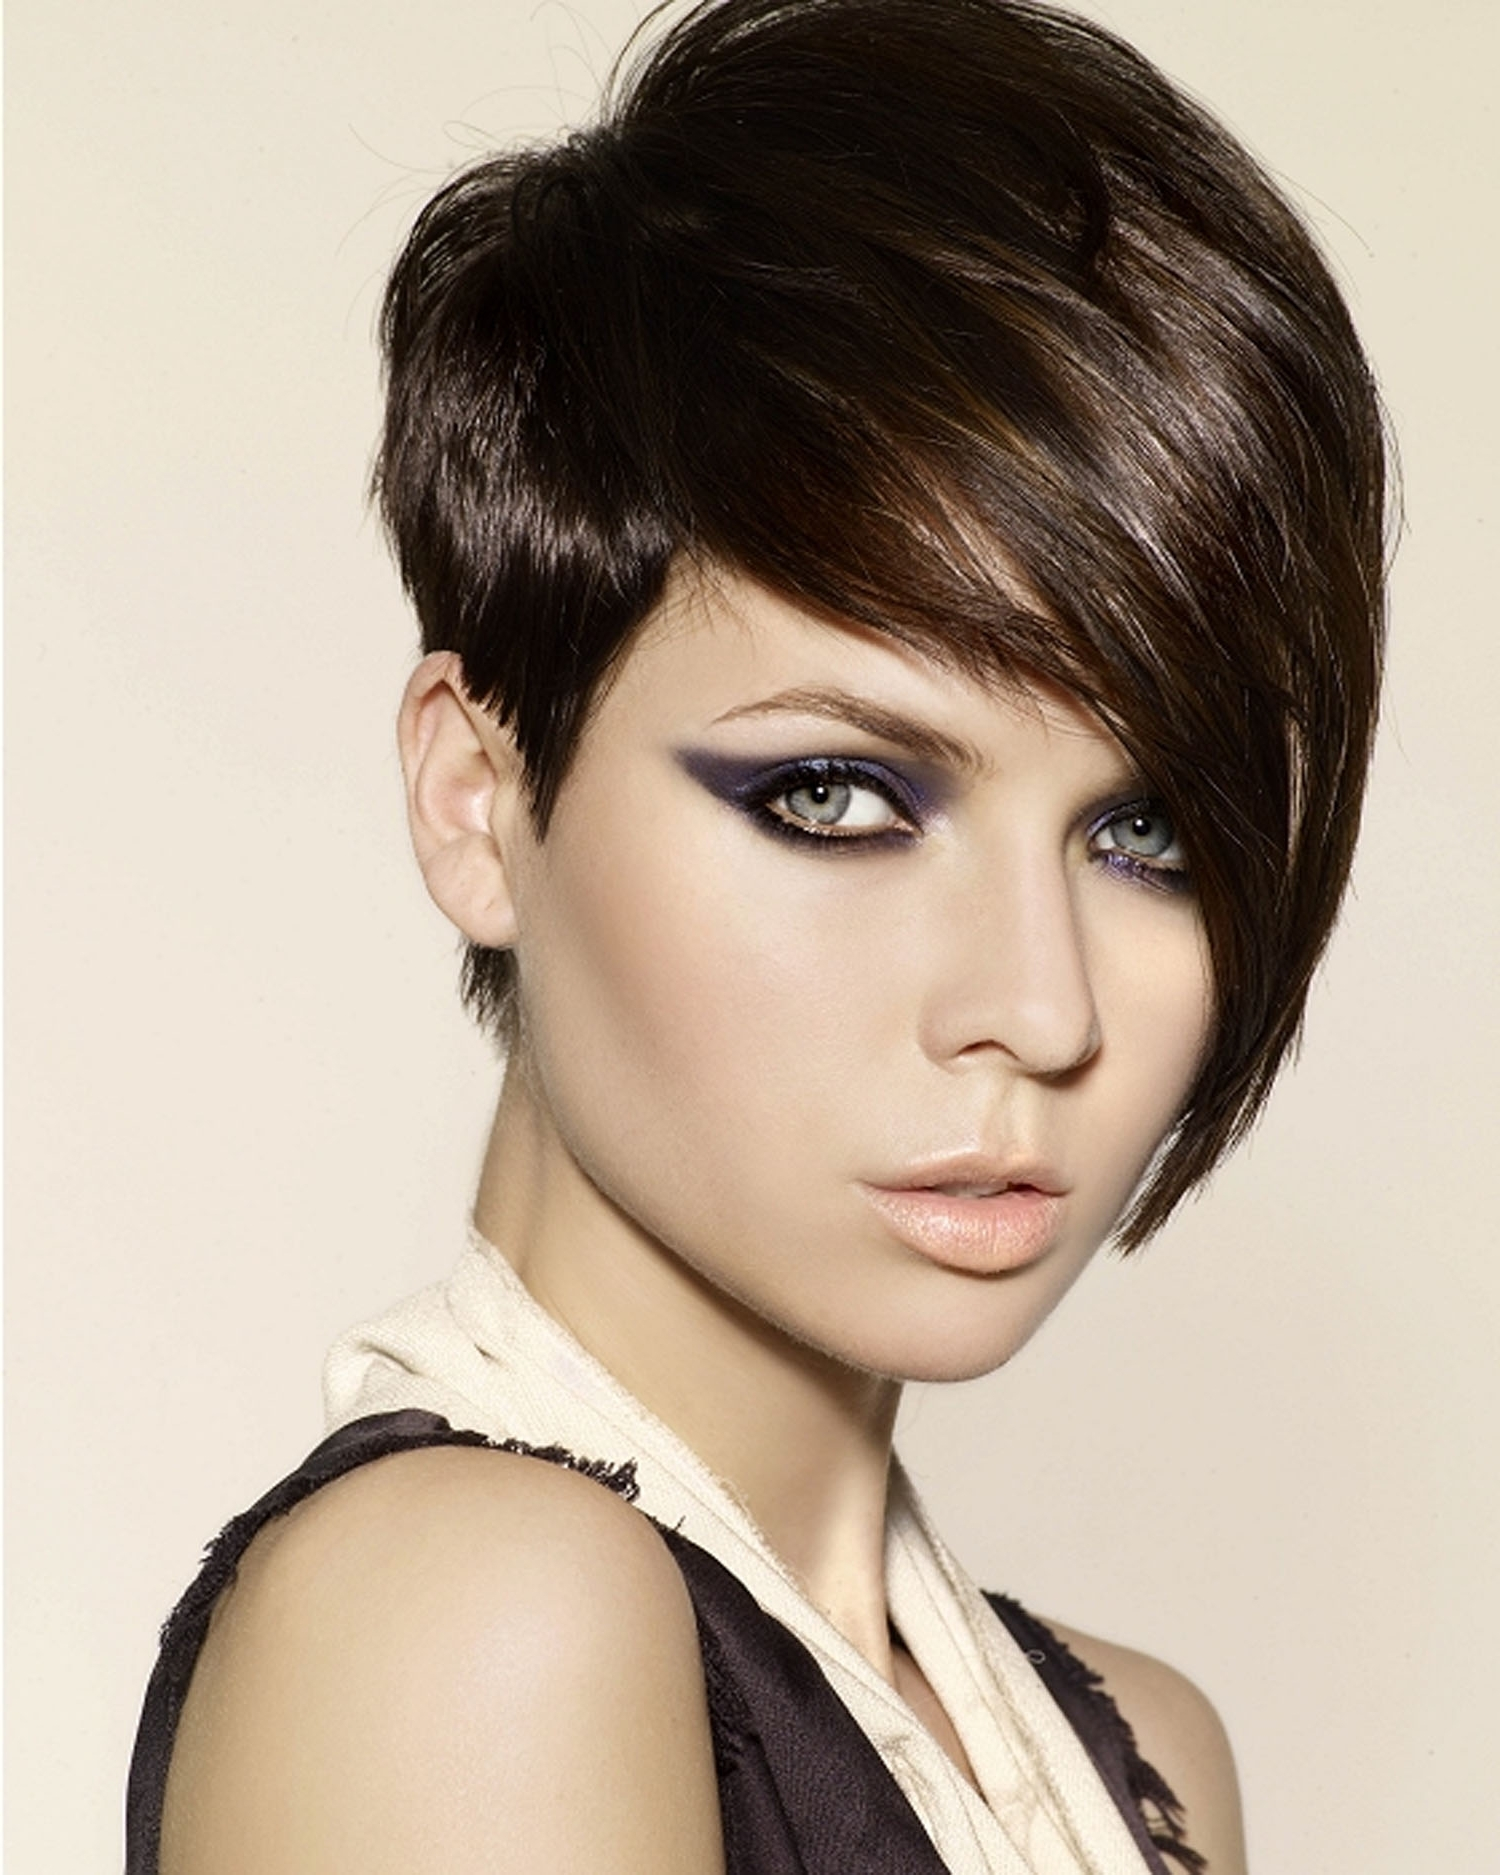 23 Cute Short Hairstyles (With Bangs) | Styles Weekly With Most Up To Date Pixie Hairstyles With Long Fringe (View 15 of 15)